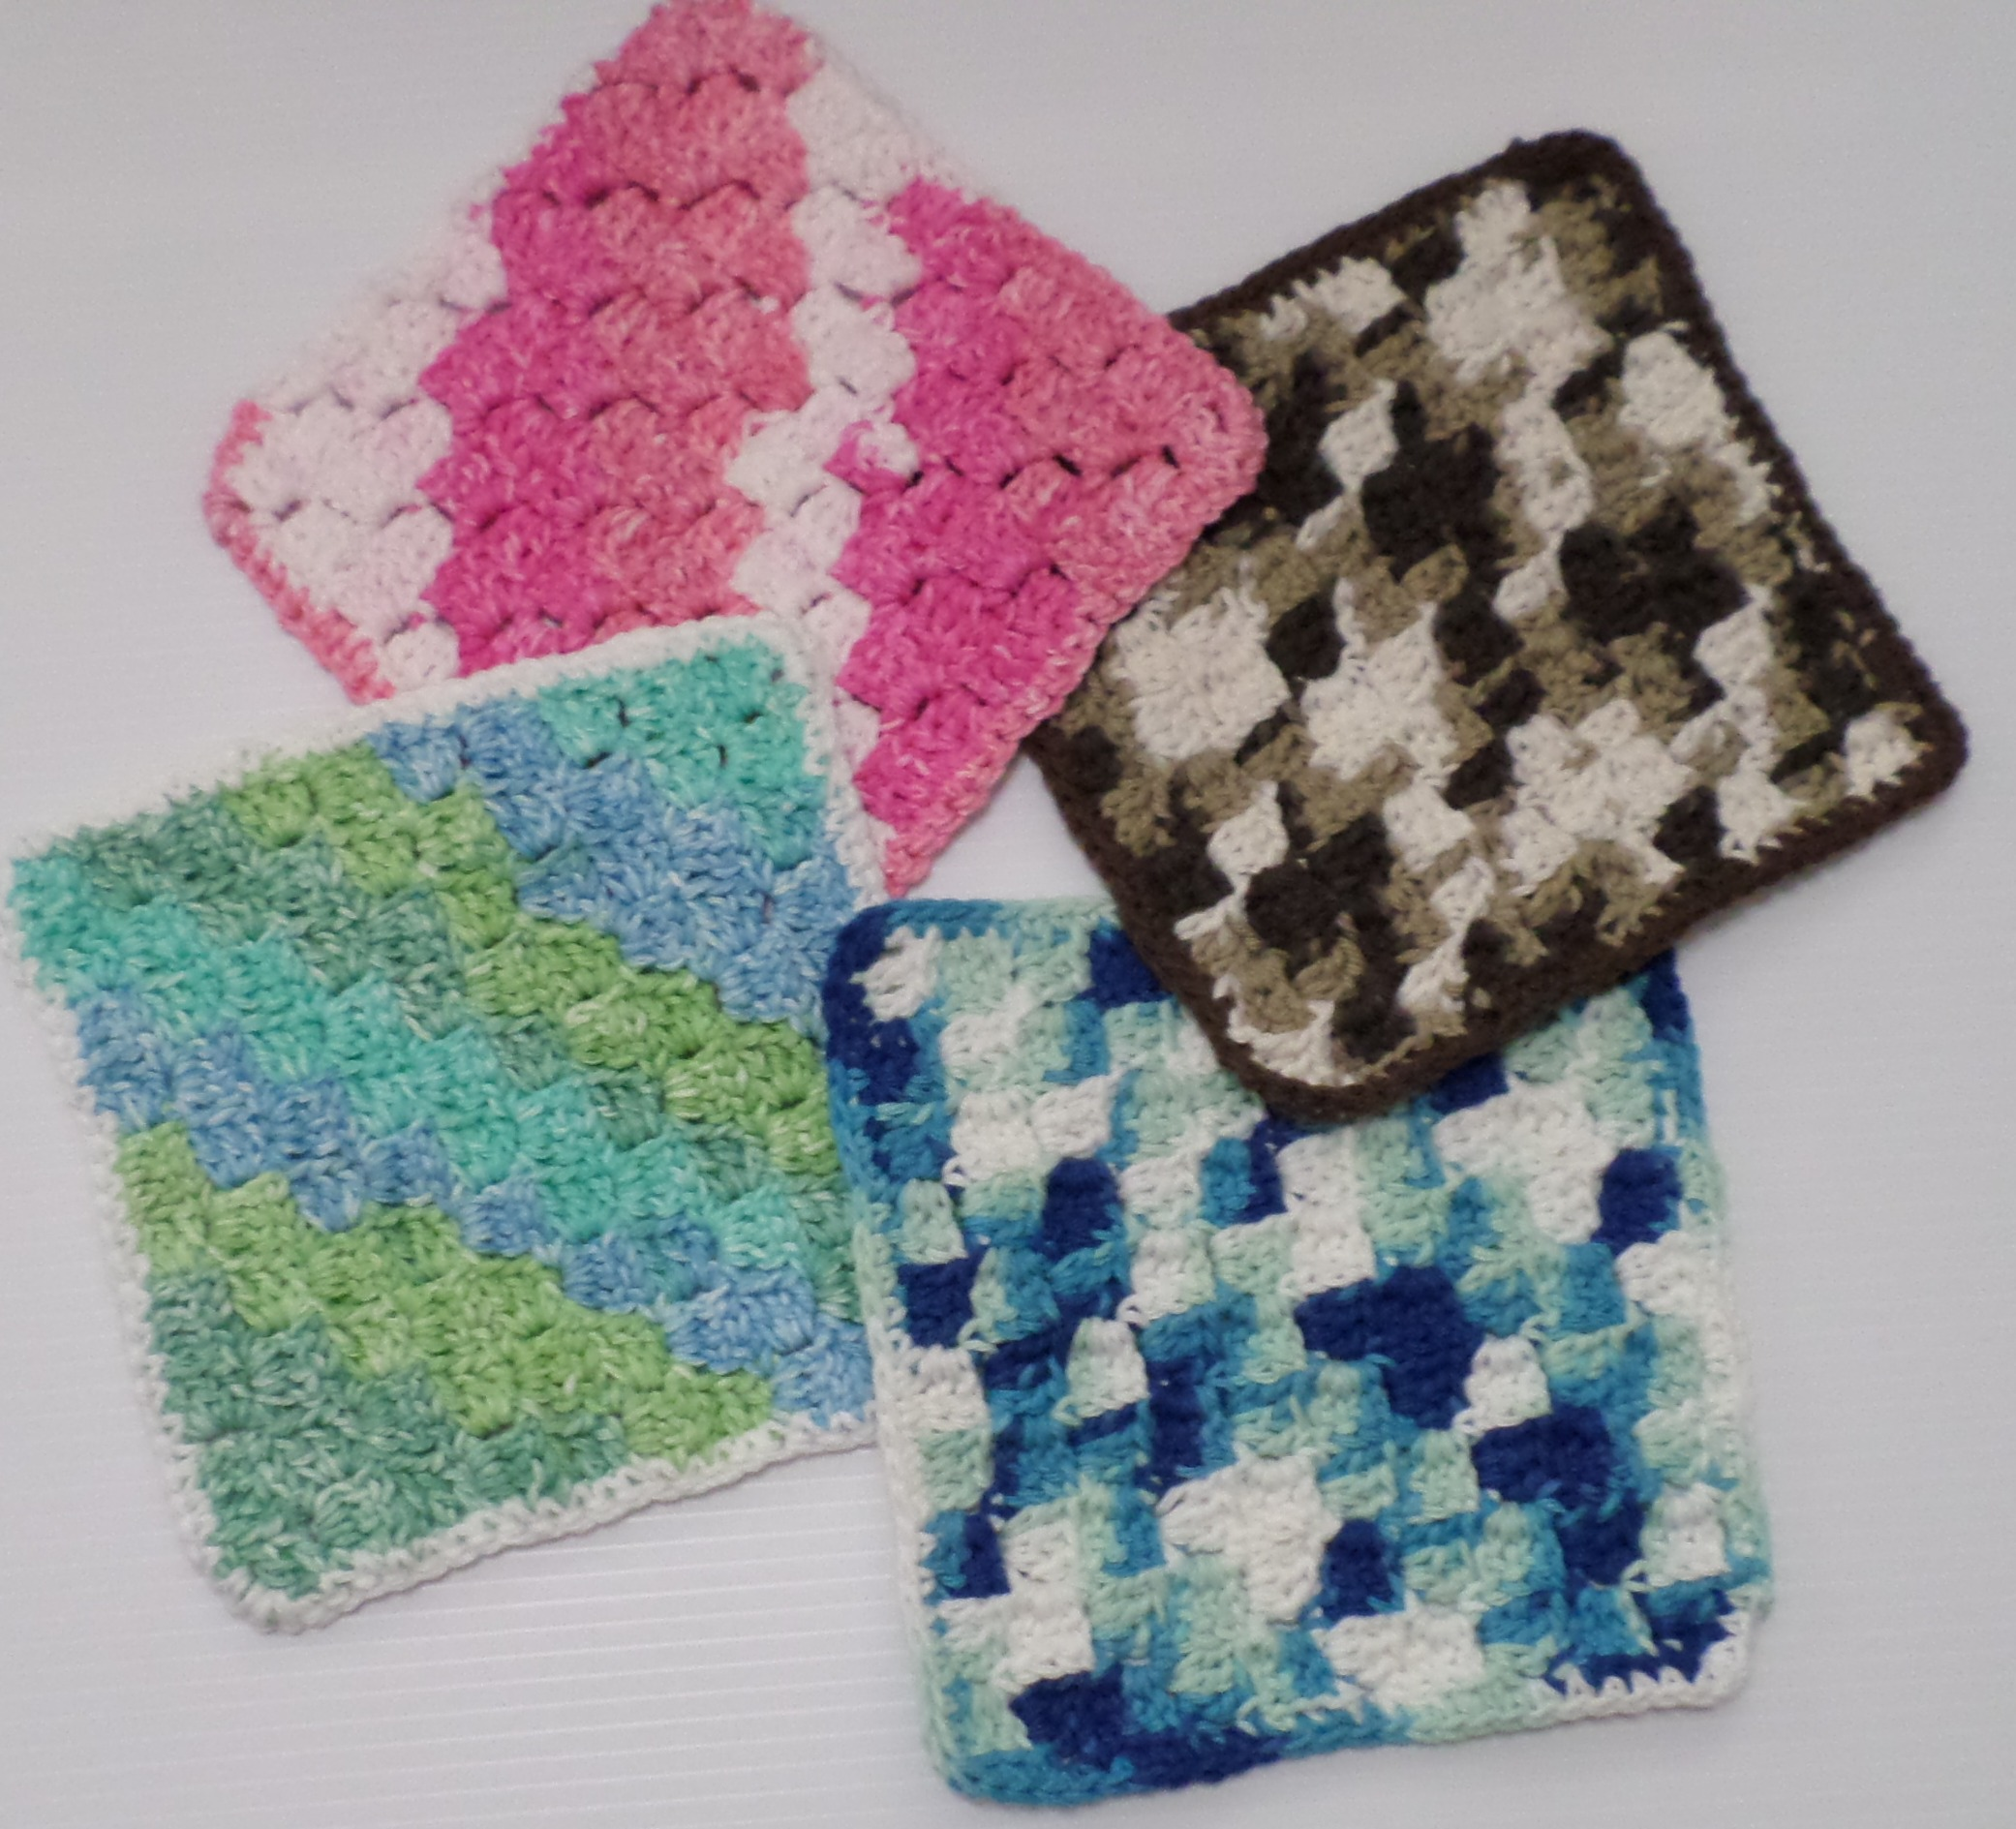 Free Crochet Pattern For Diagonal Dishcloth : Free Crochet Dishcloth Pattern ? Diagonal Block Stitch ...